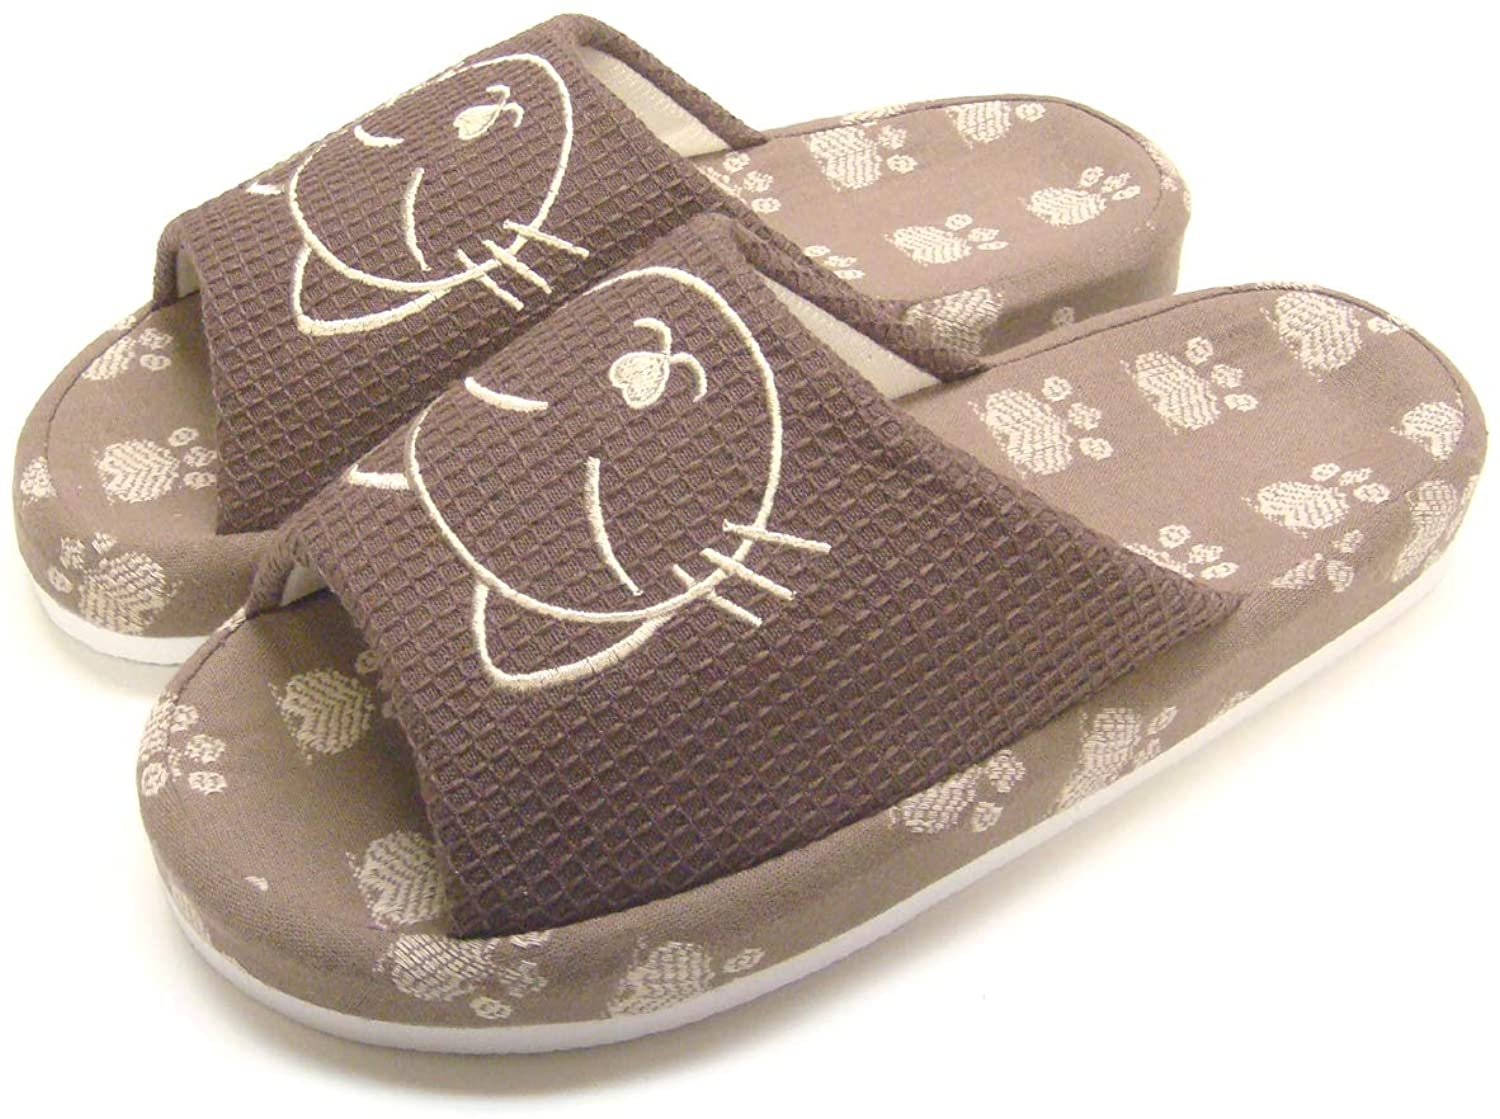 KNP260016S/Arch Support Wide Width Bamboo Cat House Slippers